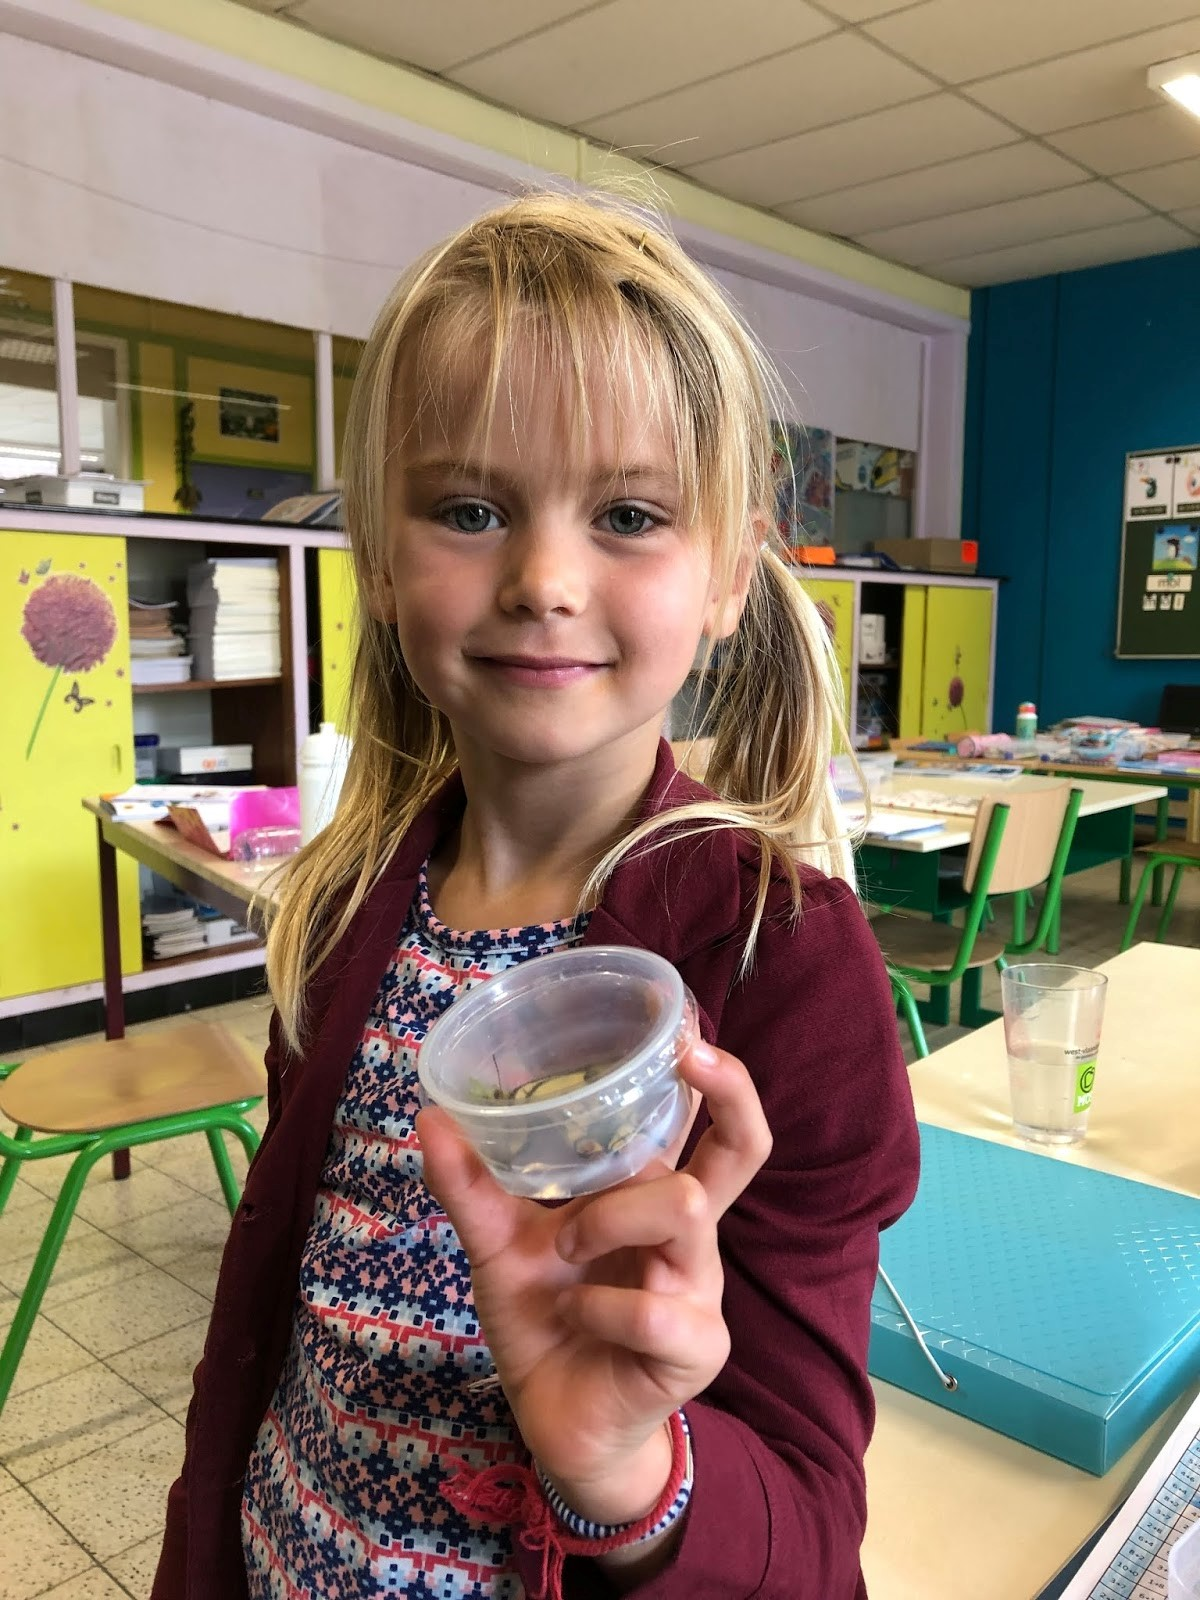 Project insecten